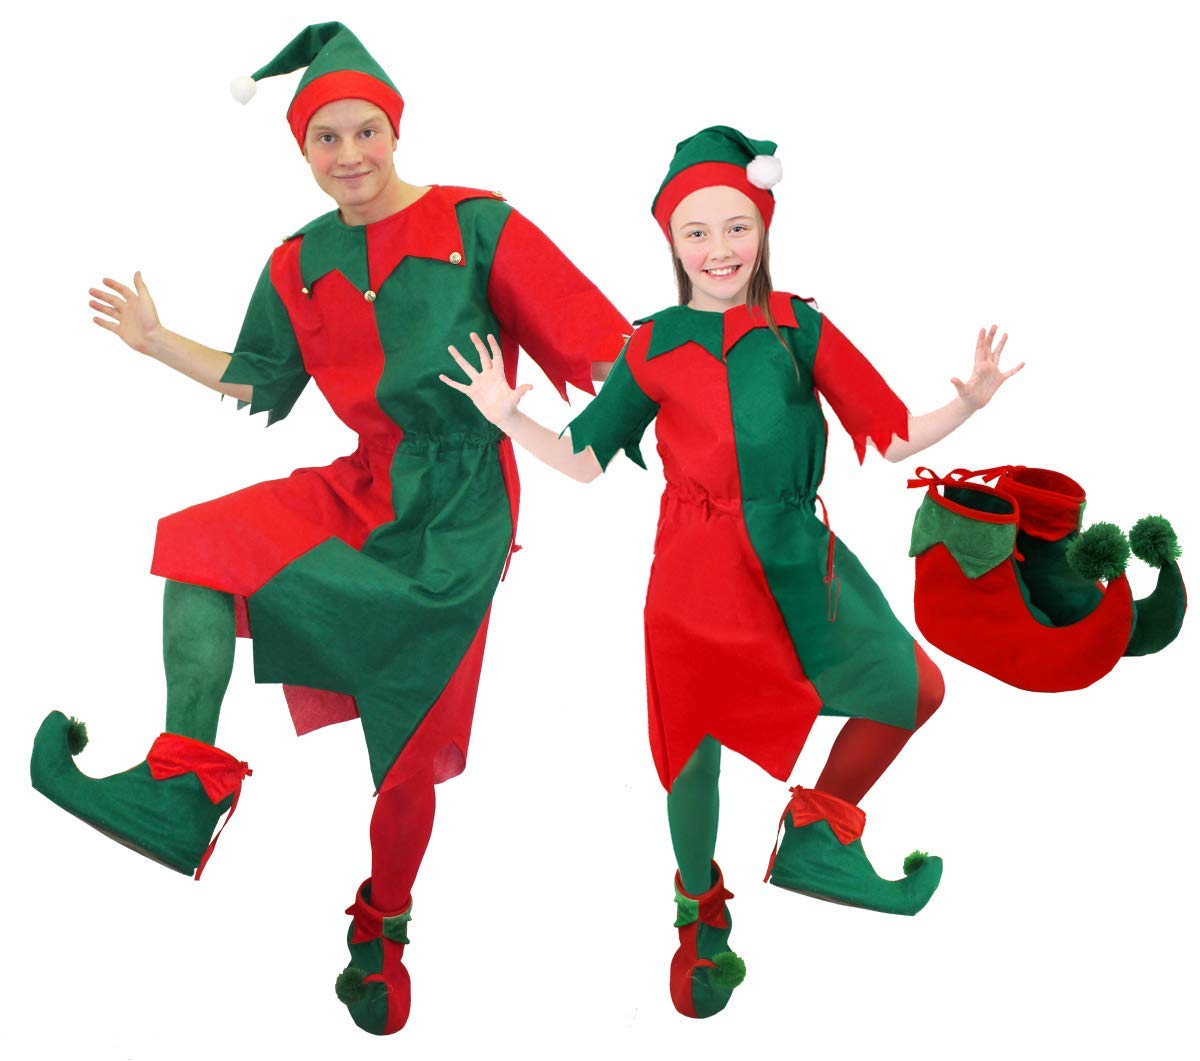 MENS & WOMENS CHEEKY ELF FANCY DRESS COSTUME. CHRISTMAS ELF COSTUME FOR MEN & WOMEN IN RED & GREEN WITH JINGLE BELLS, ELF TIGHTS, ELF HAT, AND ELF SHOES. SIZE: LADIES UK 8-10 | MENS SMALL